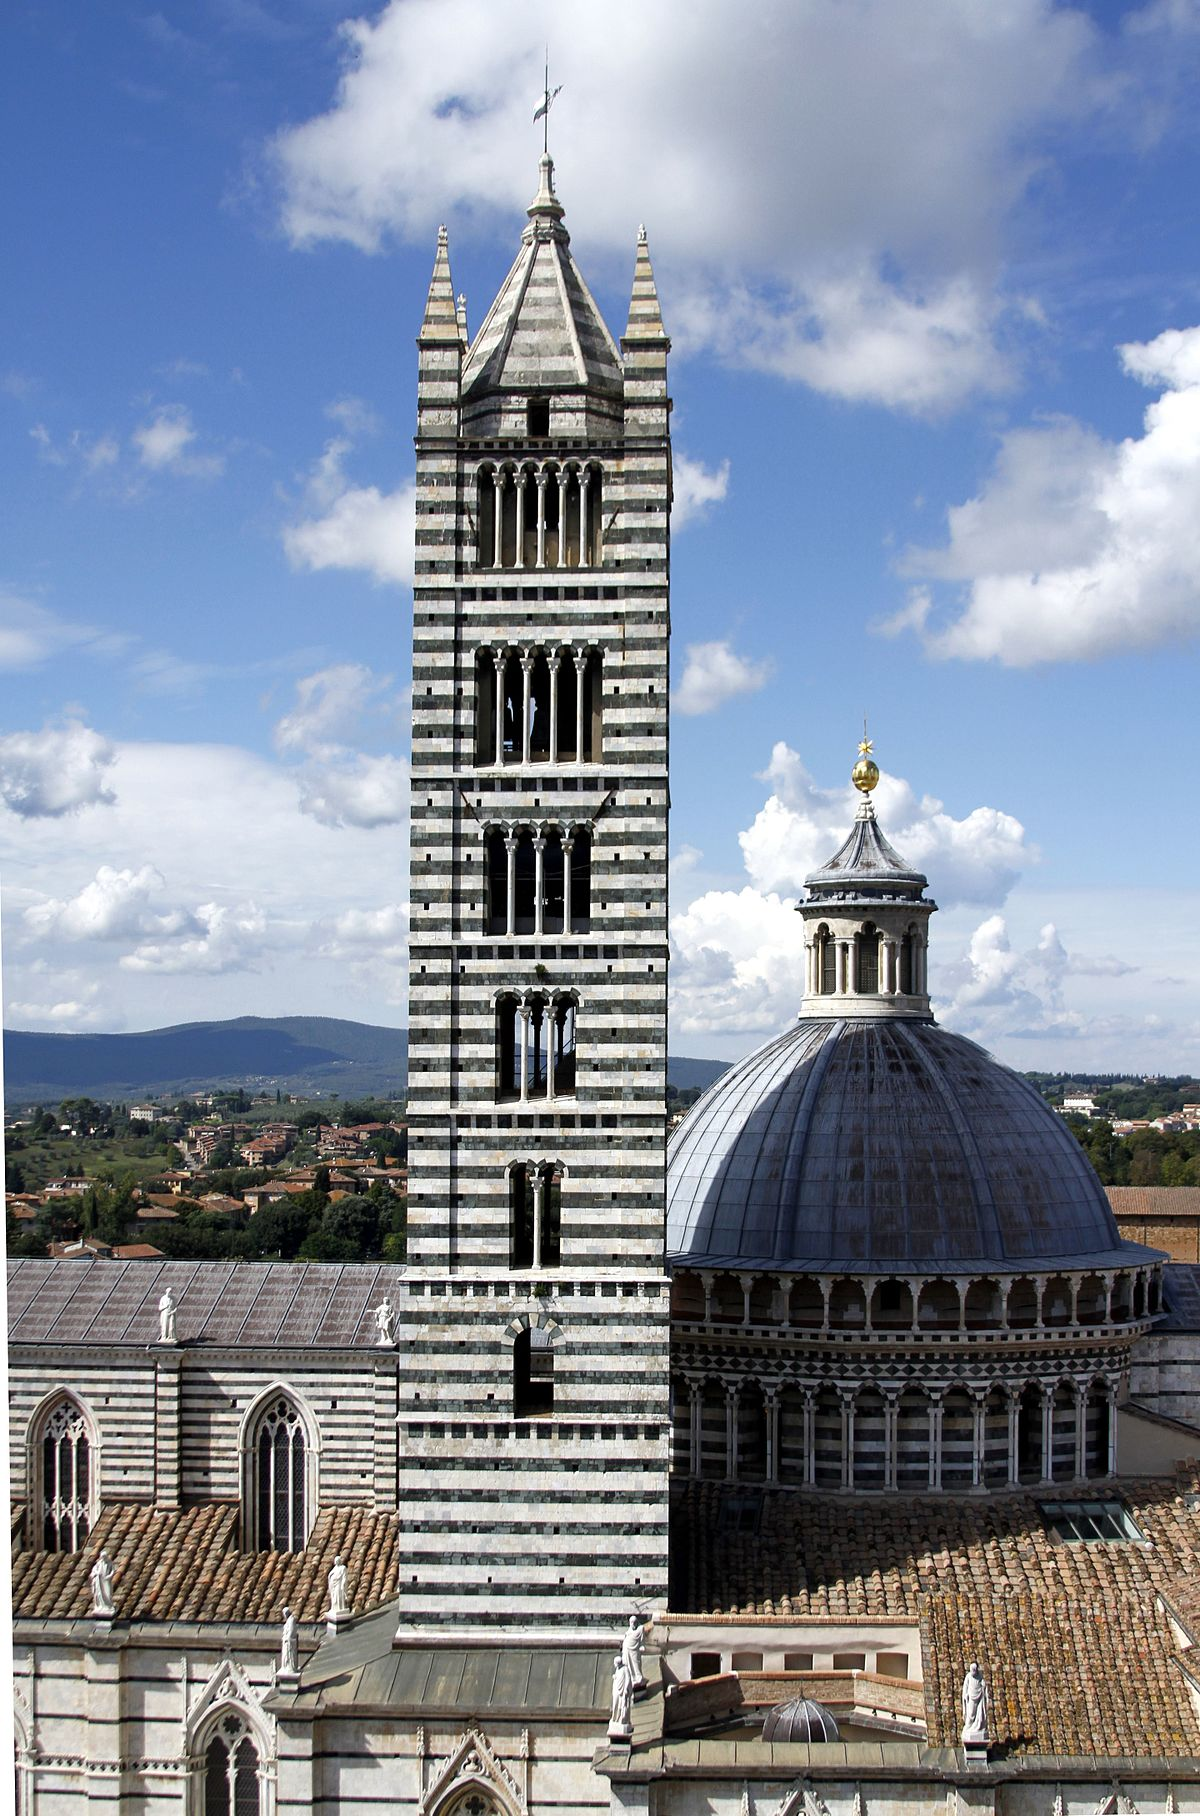 Campanile of the Cathedral of Siena - Wikidata